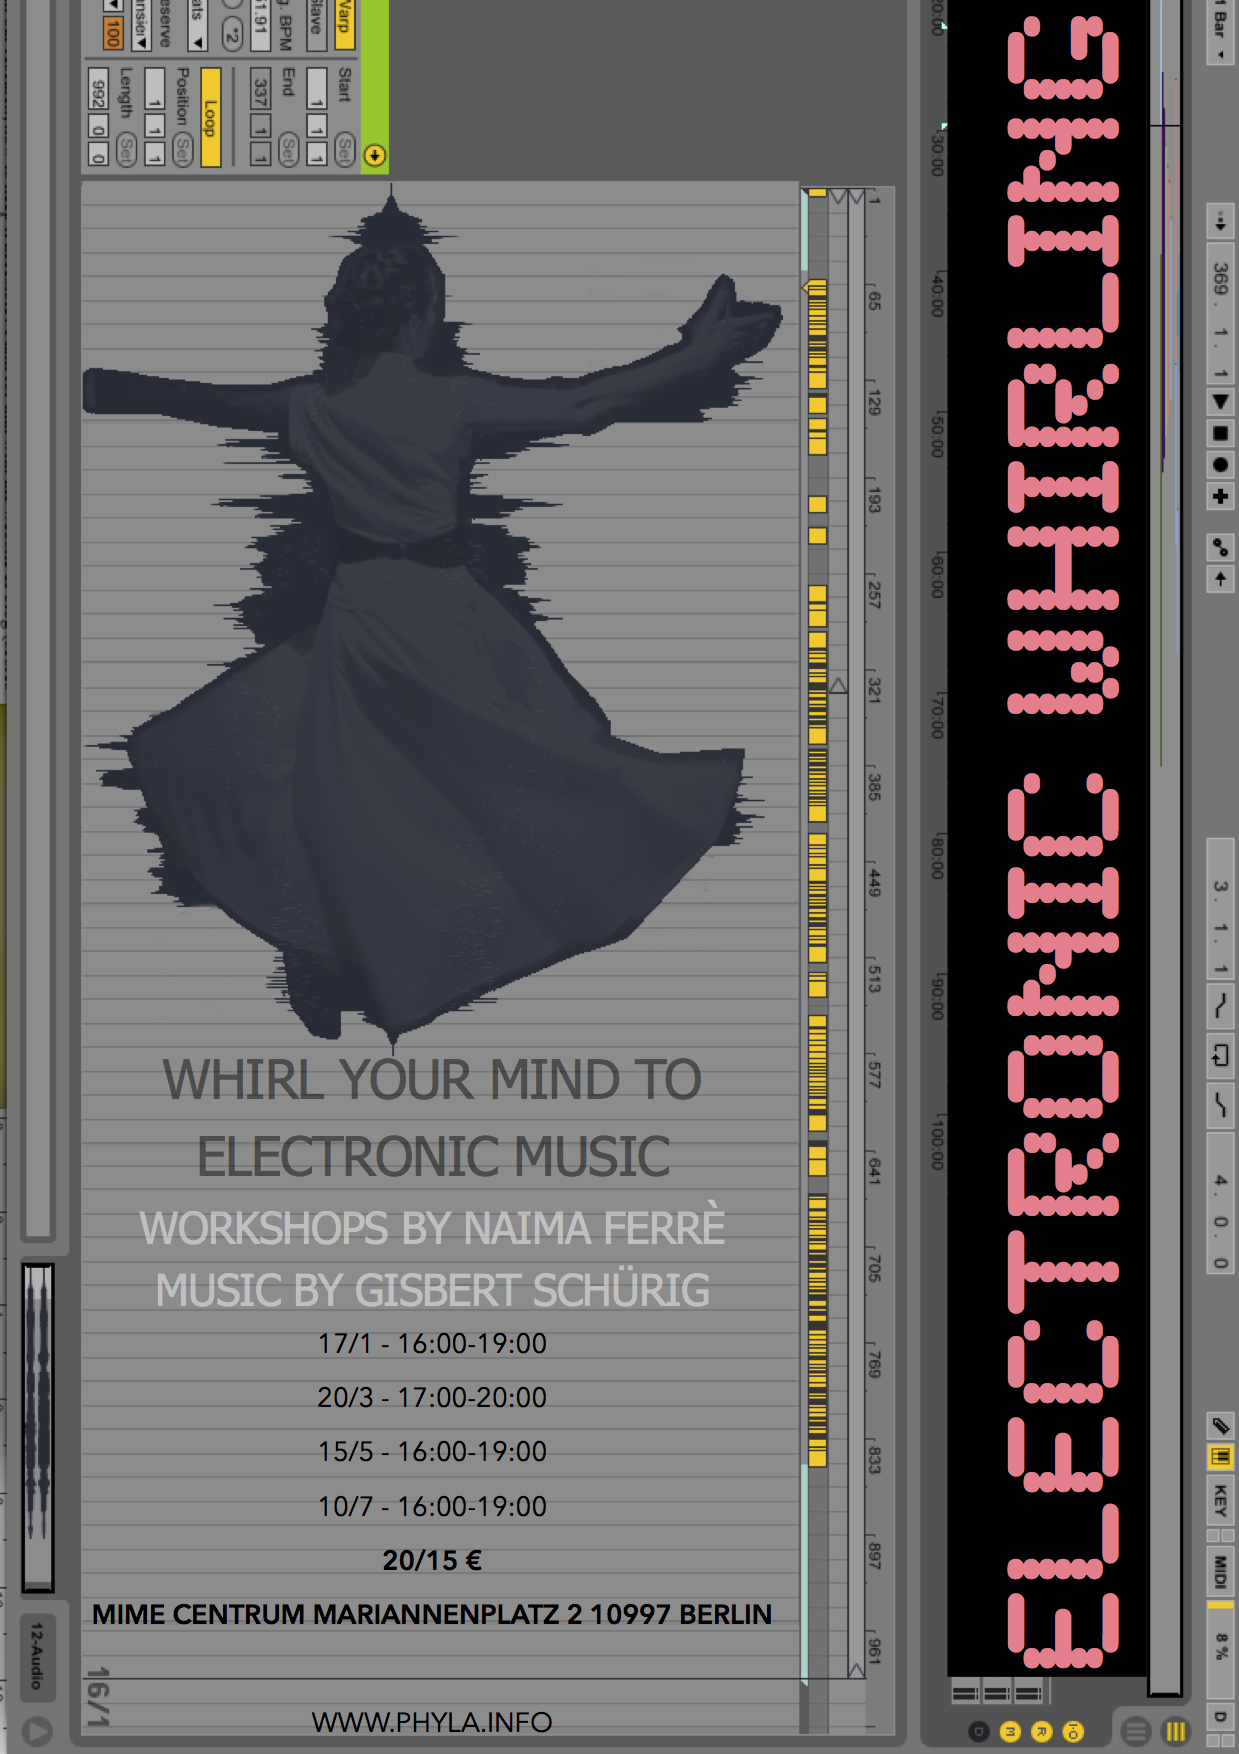 ElectronicWhirling